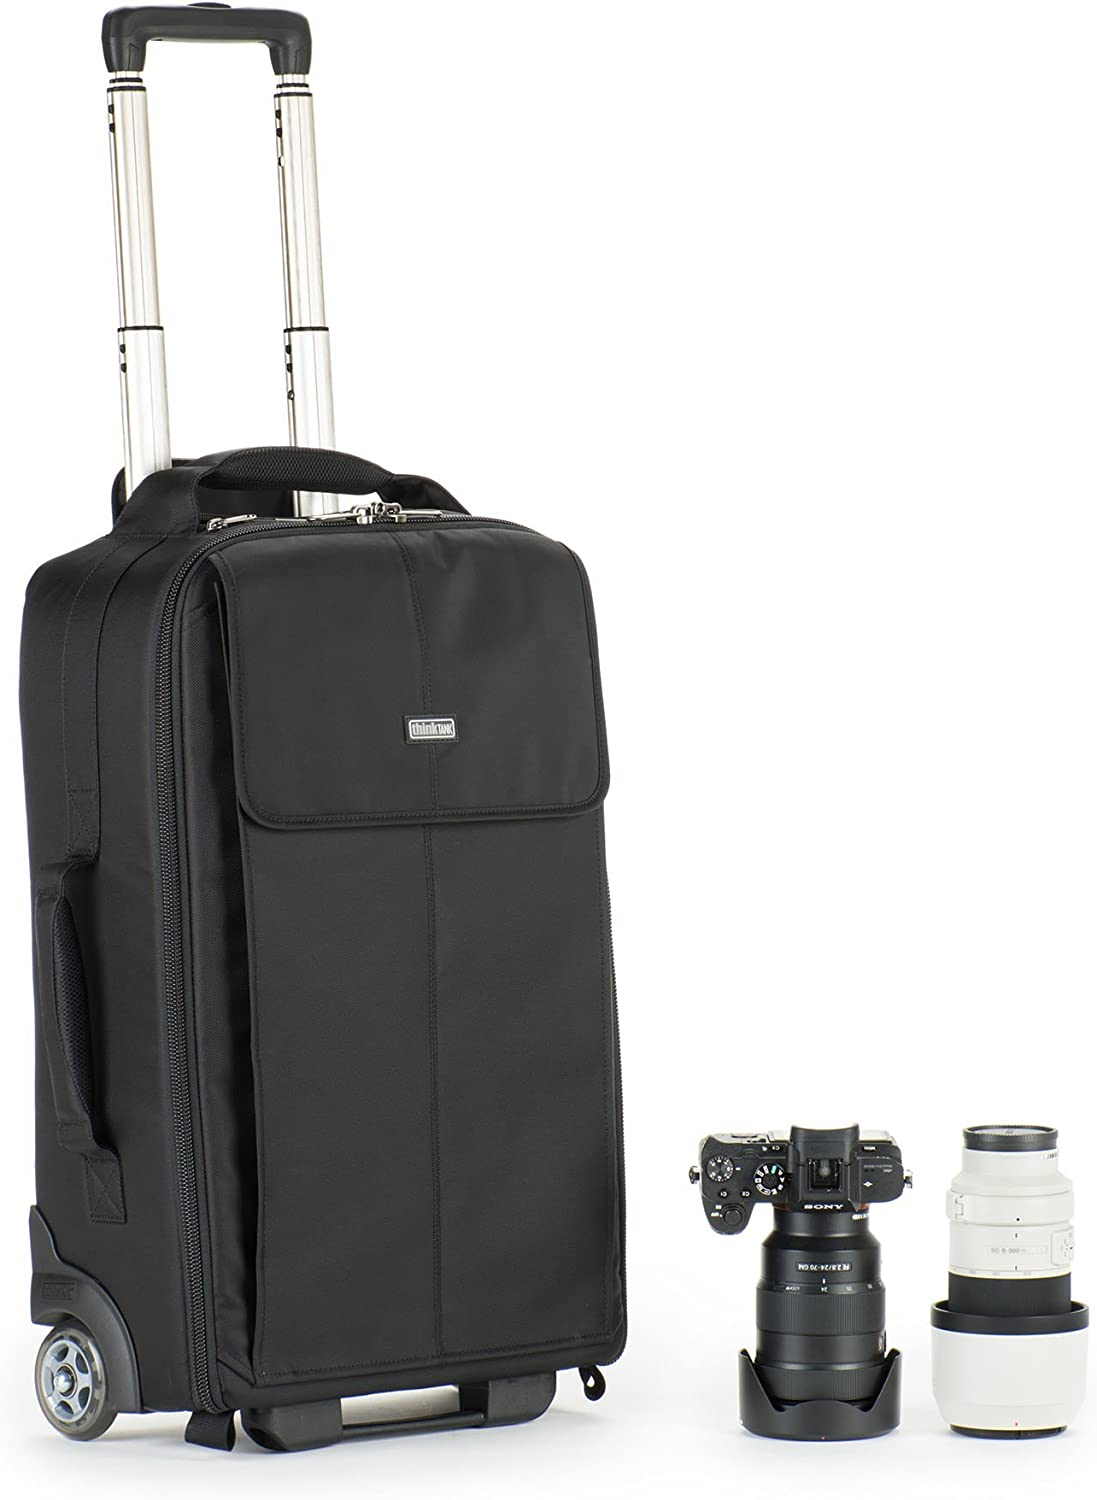 Think Tank Photo Airport Advantage Plus Rolling Camera Bag (Black)